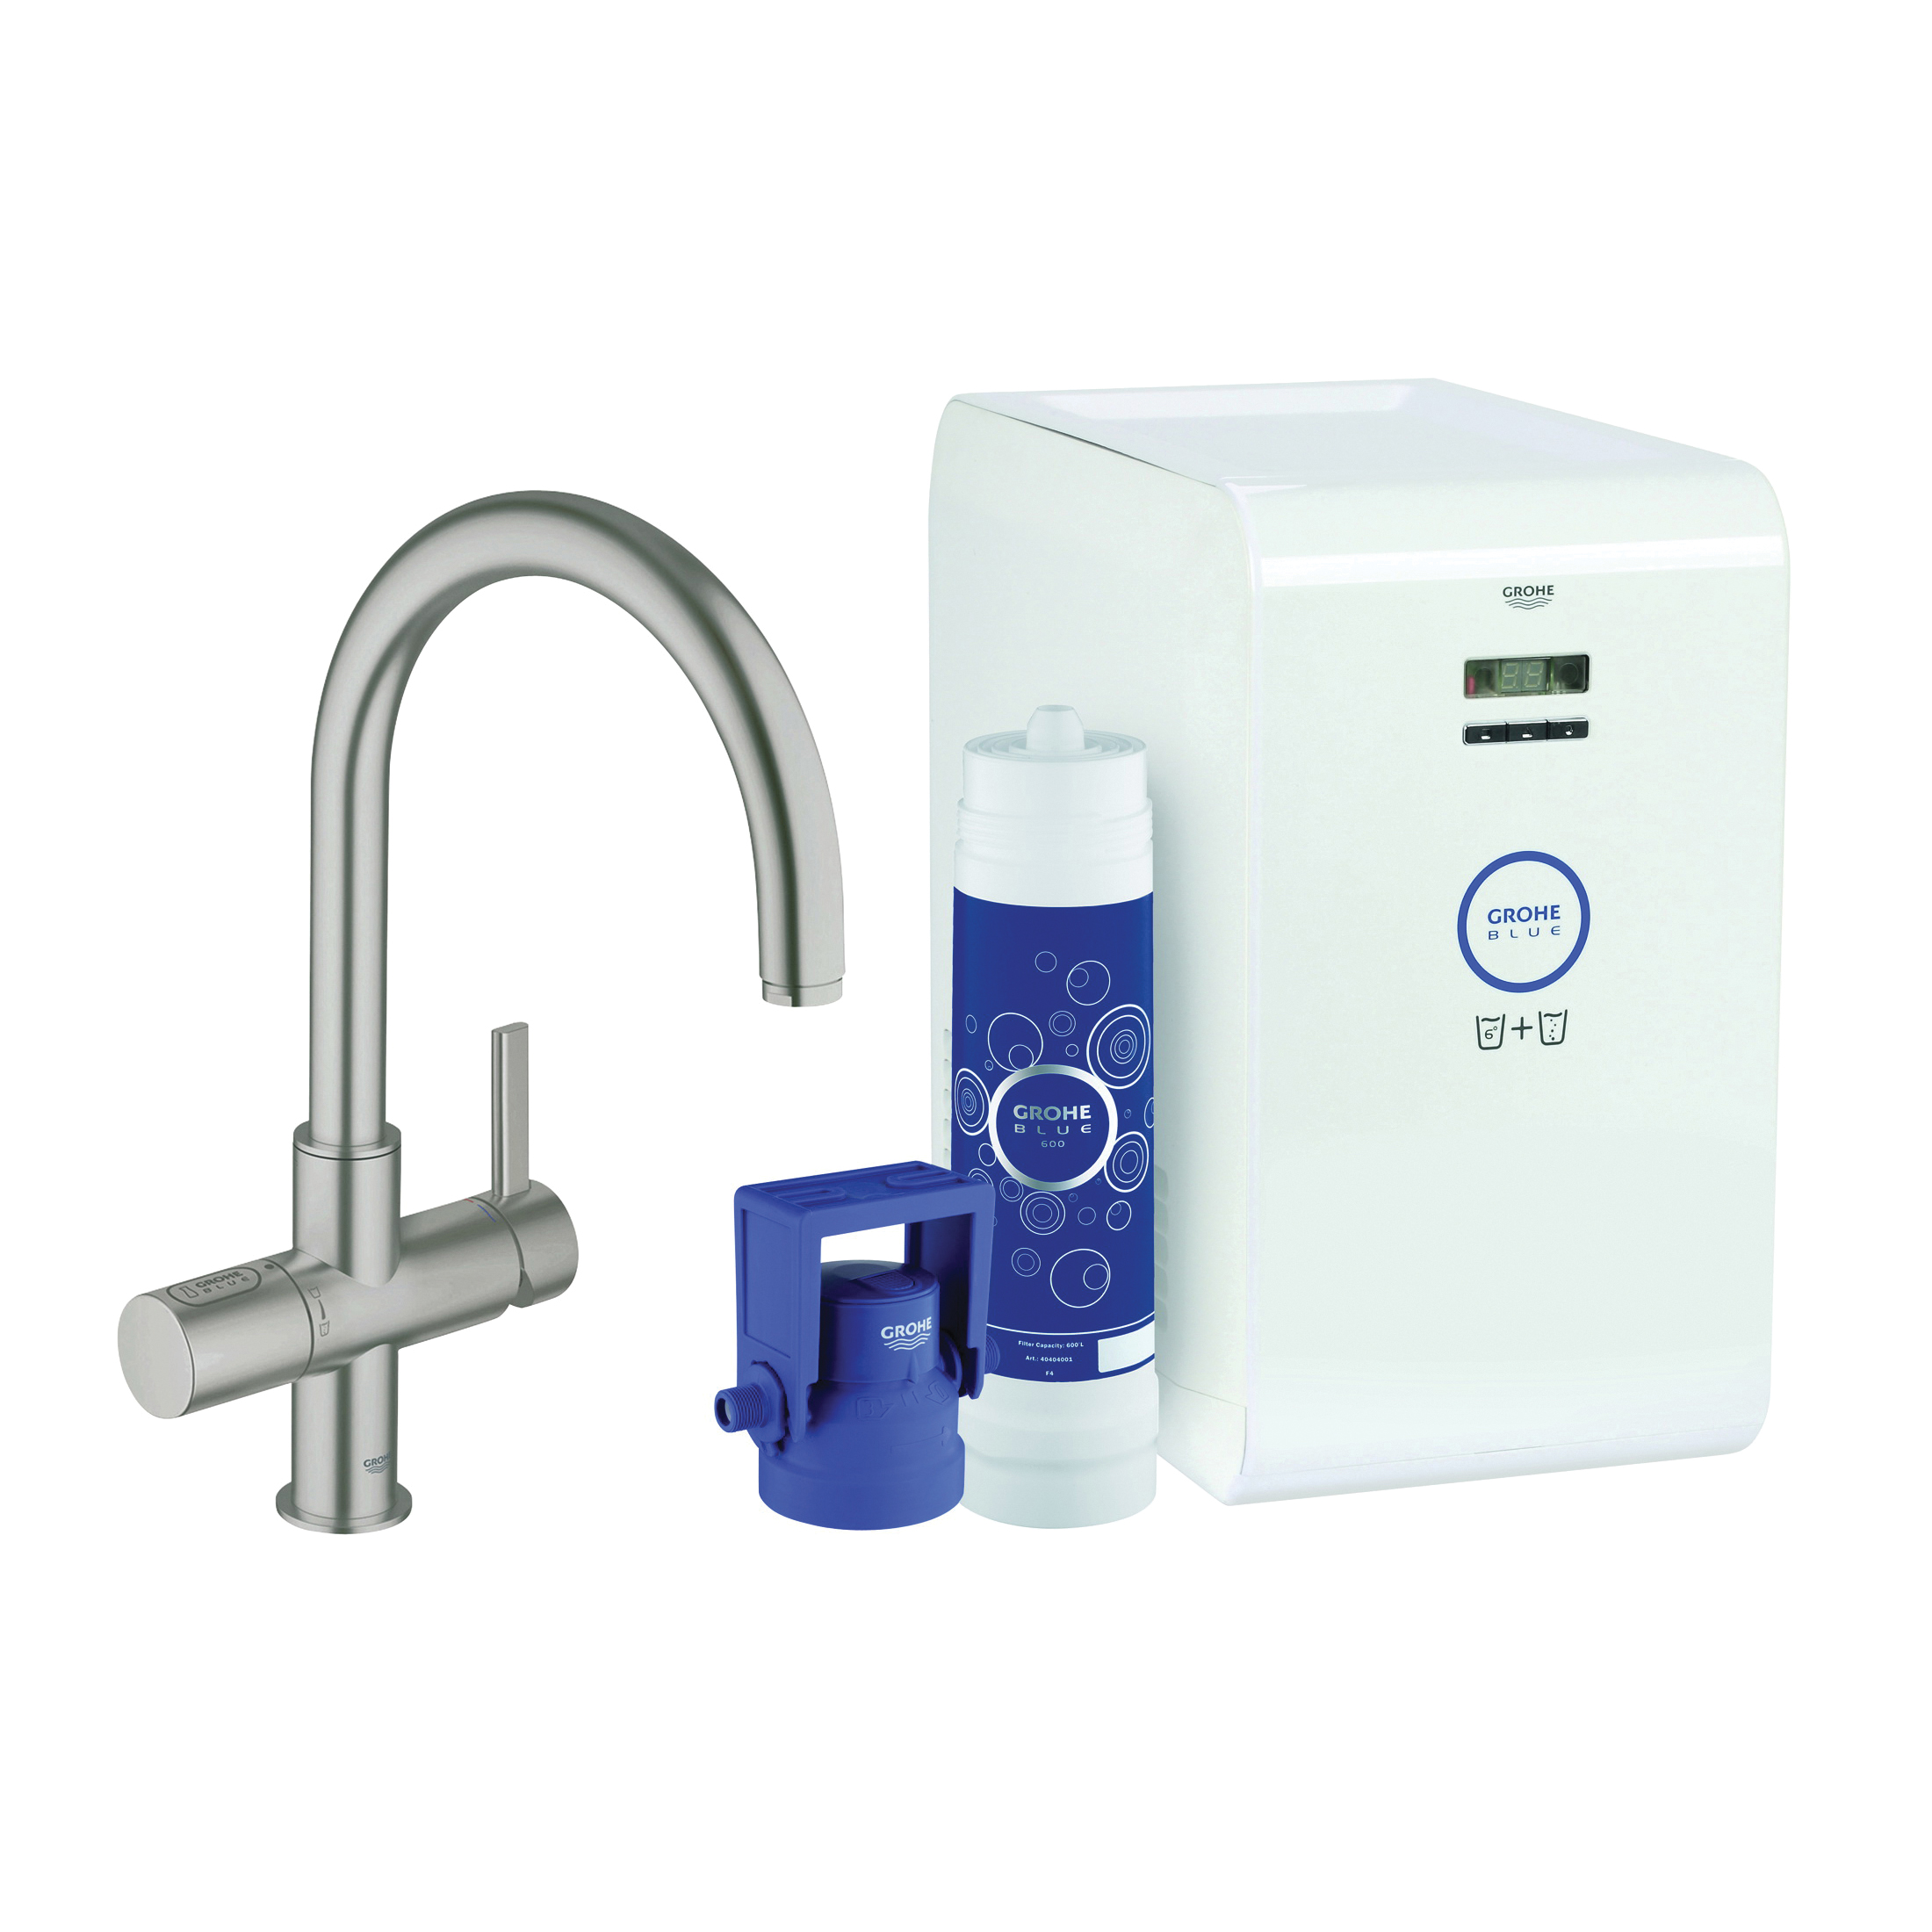 Consolidated Supply Co. | GROHE 31251DC1 GROHE Blue Sparkling Faucet ...